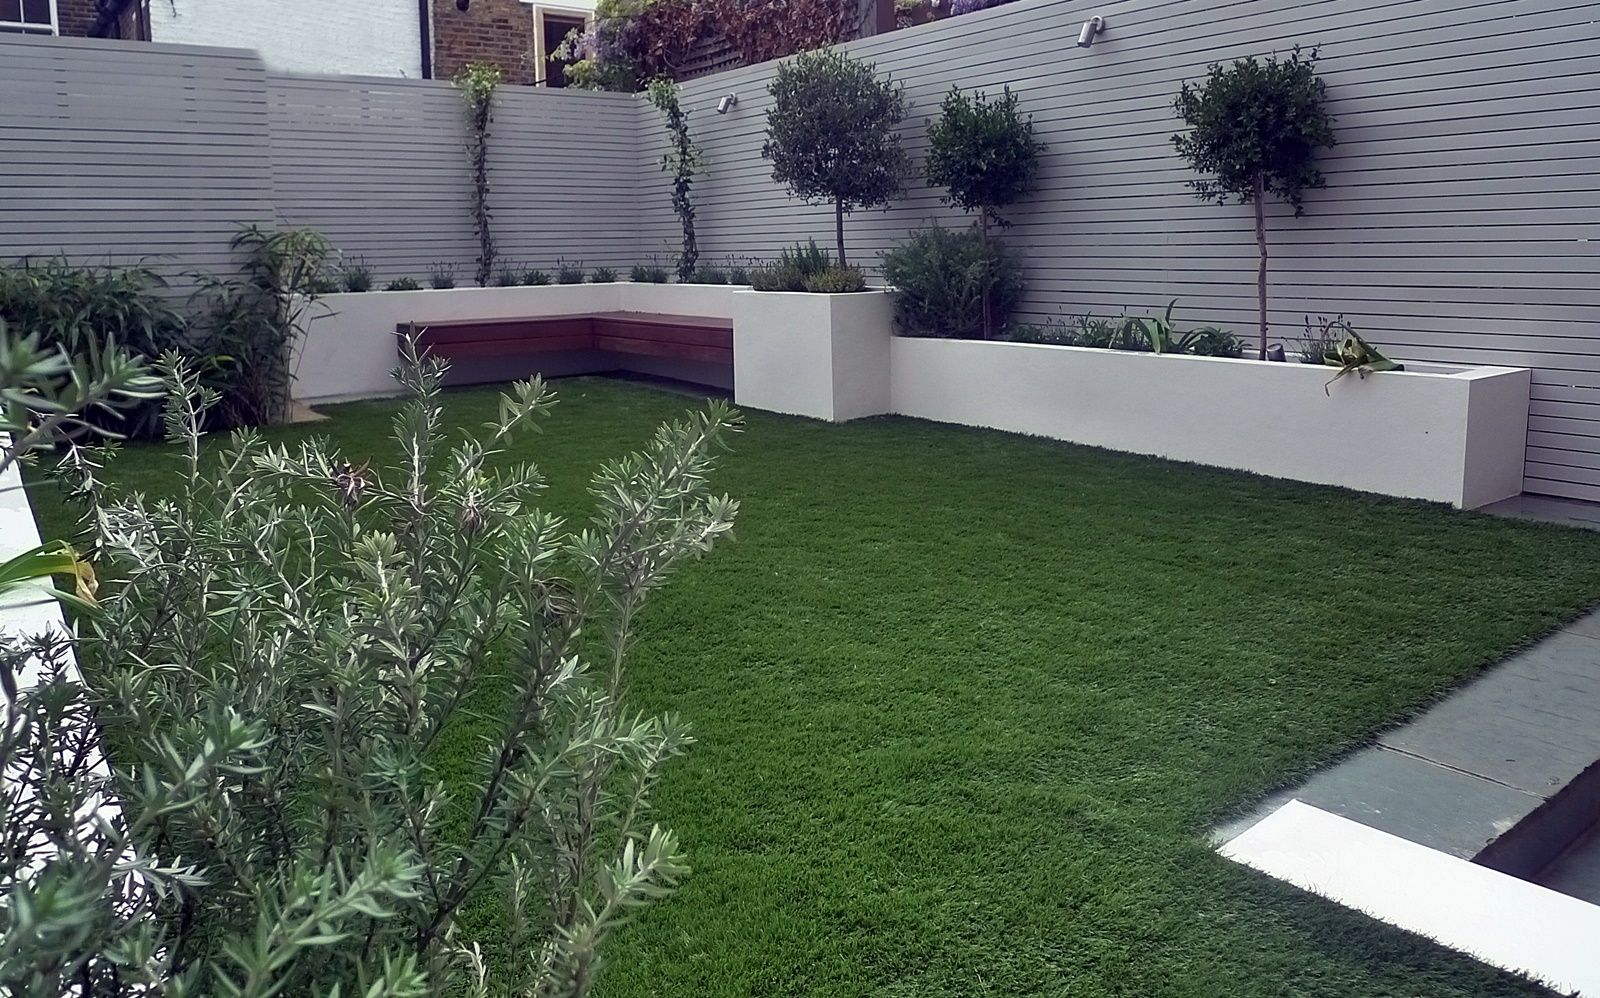 Artificial Grass Garden Designs sawn sandstone paving easy grass raised beds hardwood screen and bench balham garden design london Artificial Grass Easi Grass Modern Garden Designers And Design London